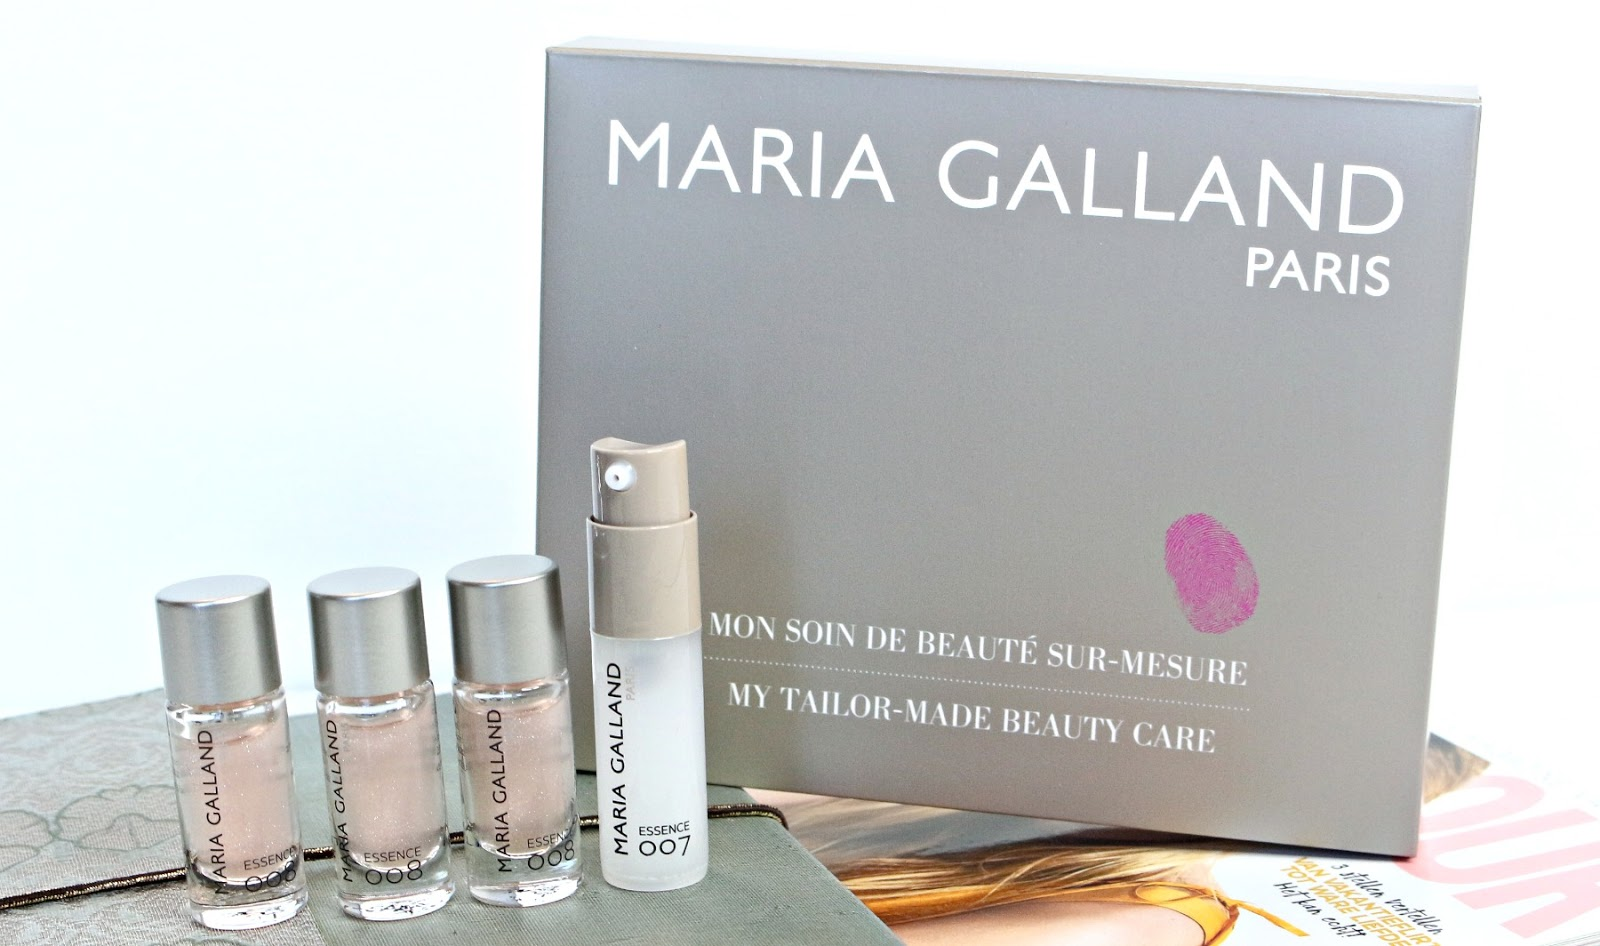 Maria Galland Essence 007